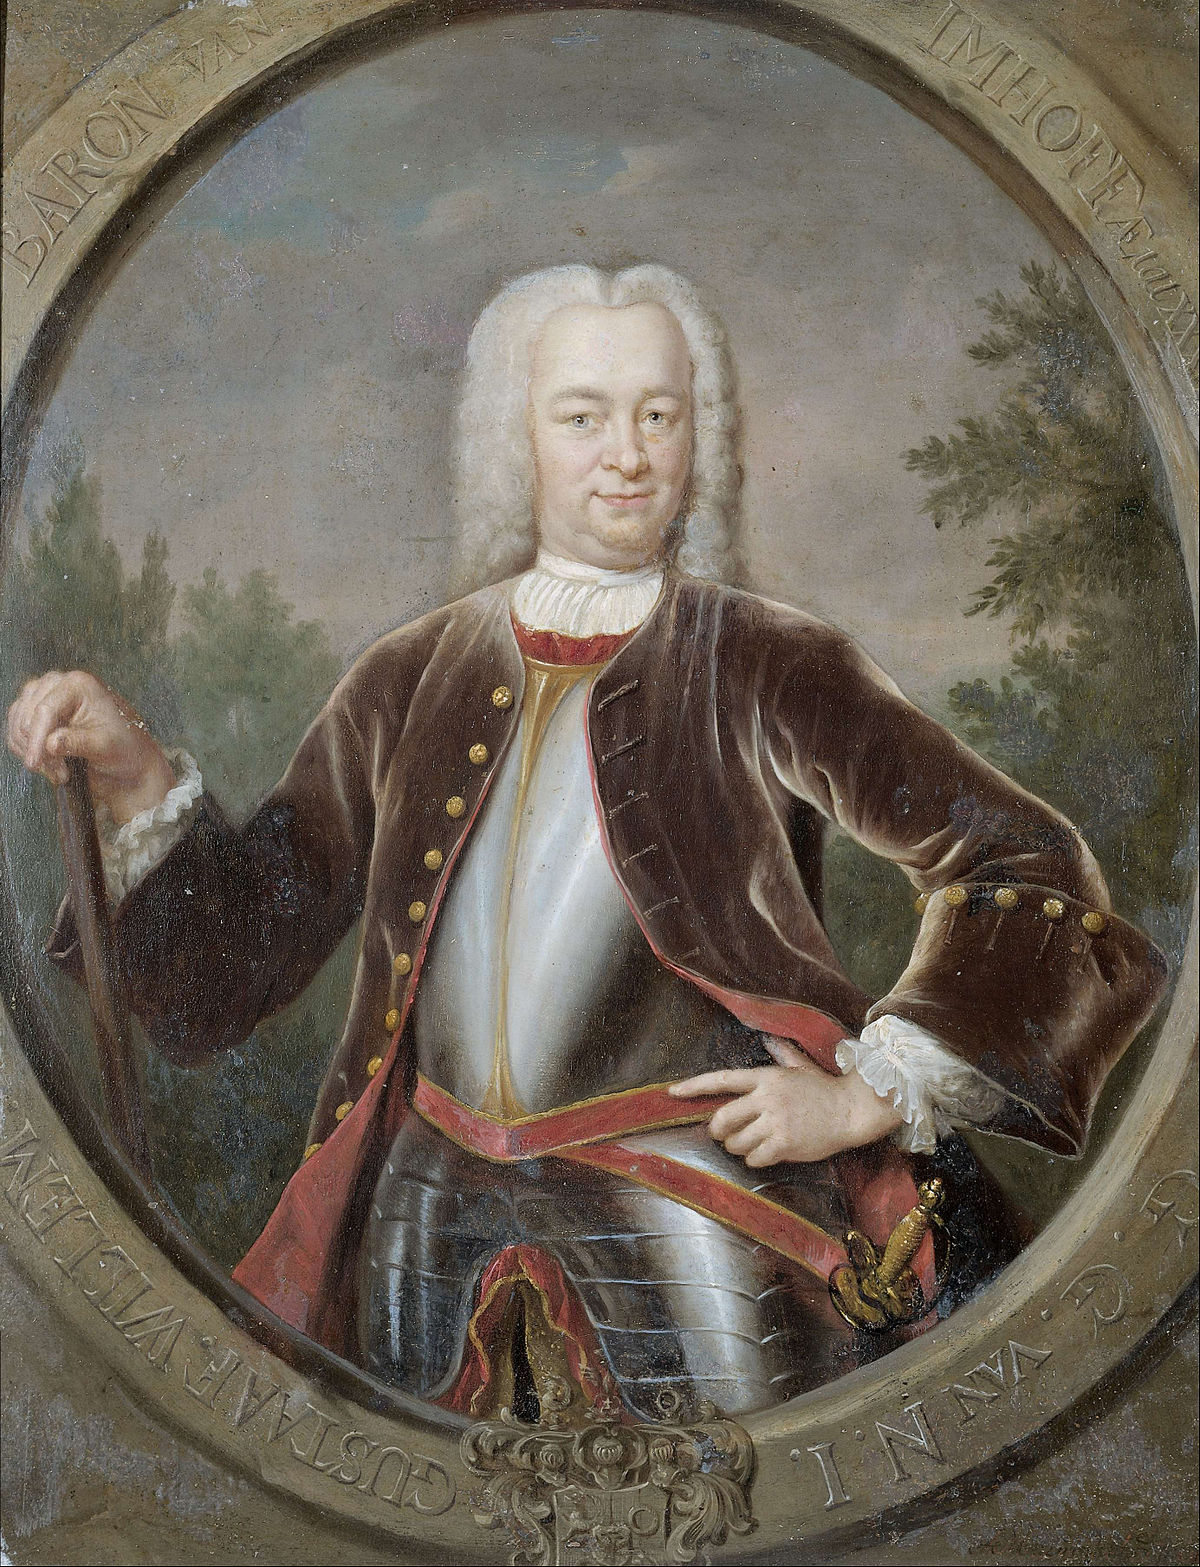 Gustaaf Willem Van Imhoff